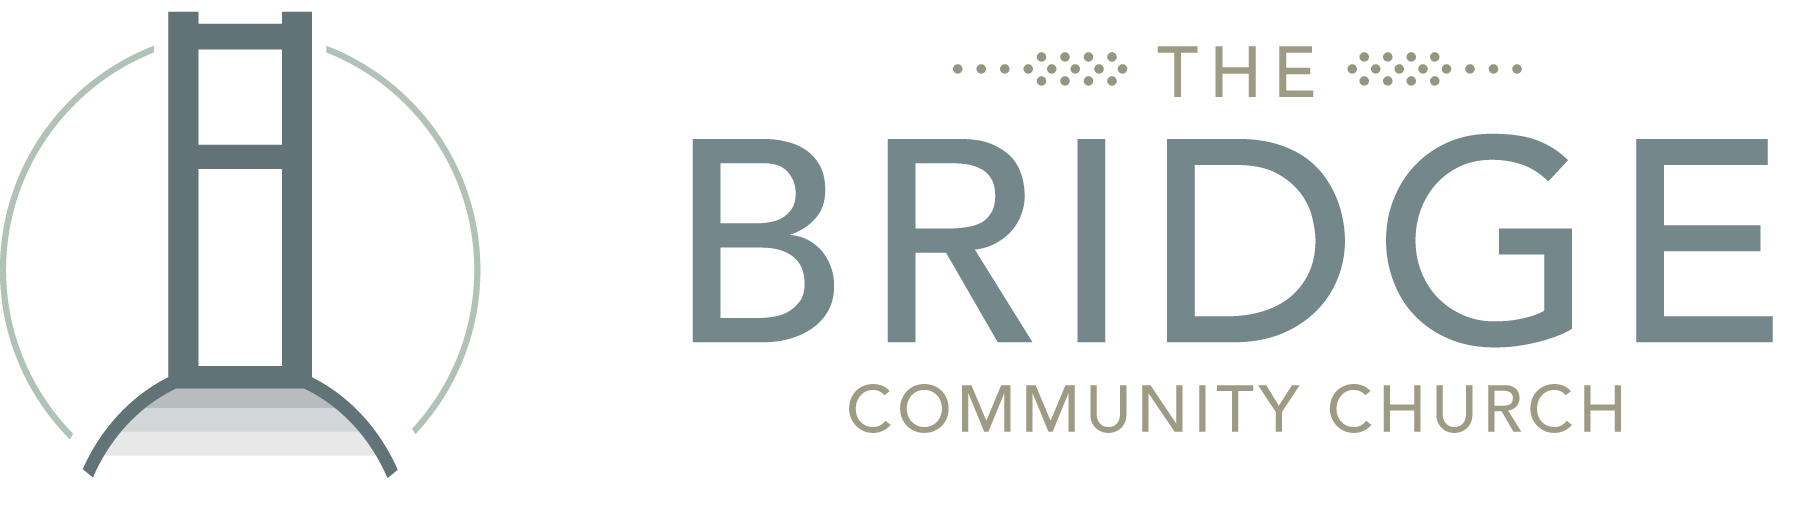 bridge-logo-big.jpg